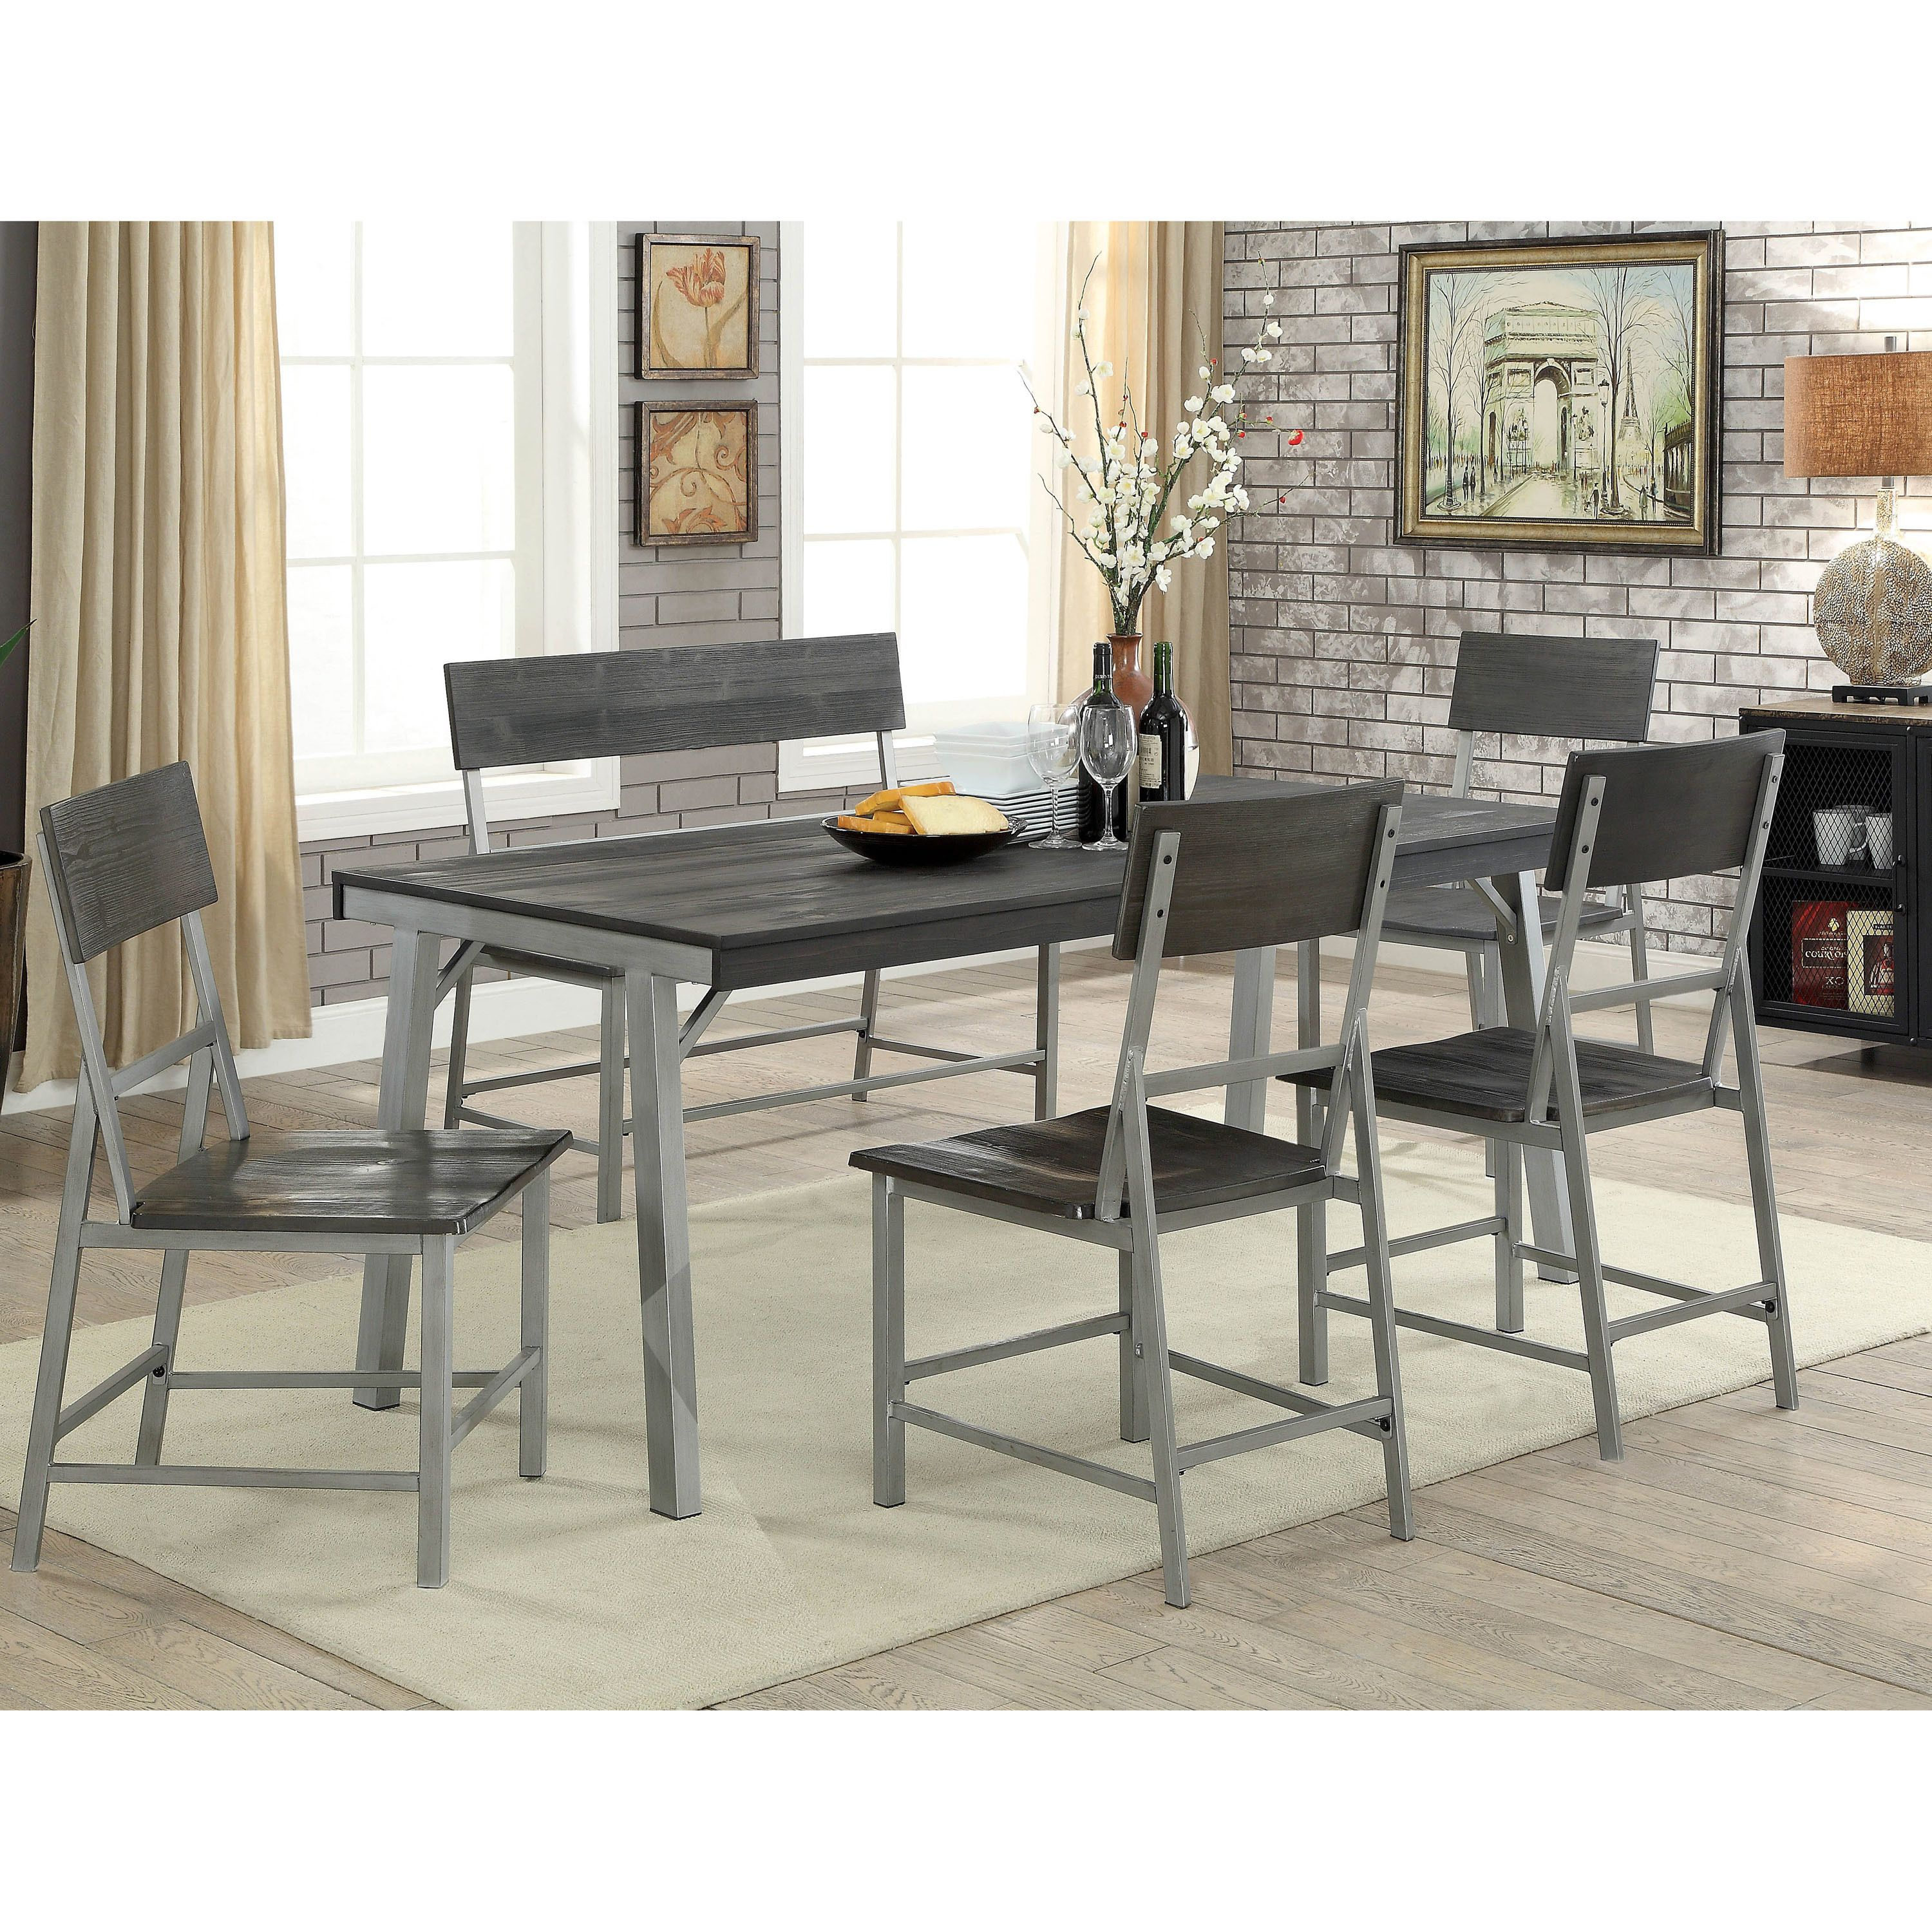 Magnificent Furniture Of America Adams Industrial 70 Inch Metal Dining Beatyapartments Chair Design Images Beatyapartmentscom